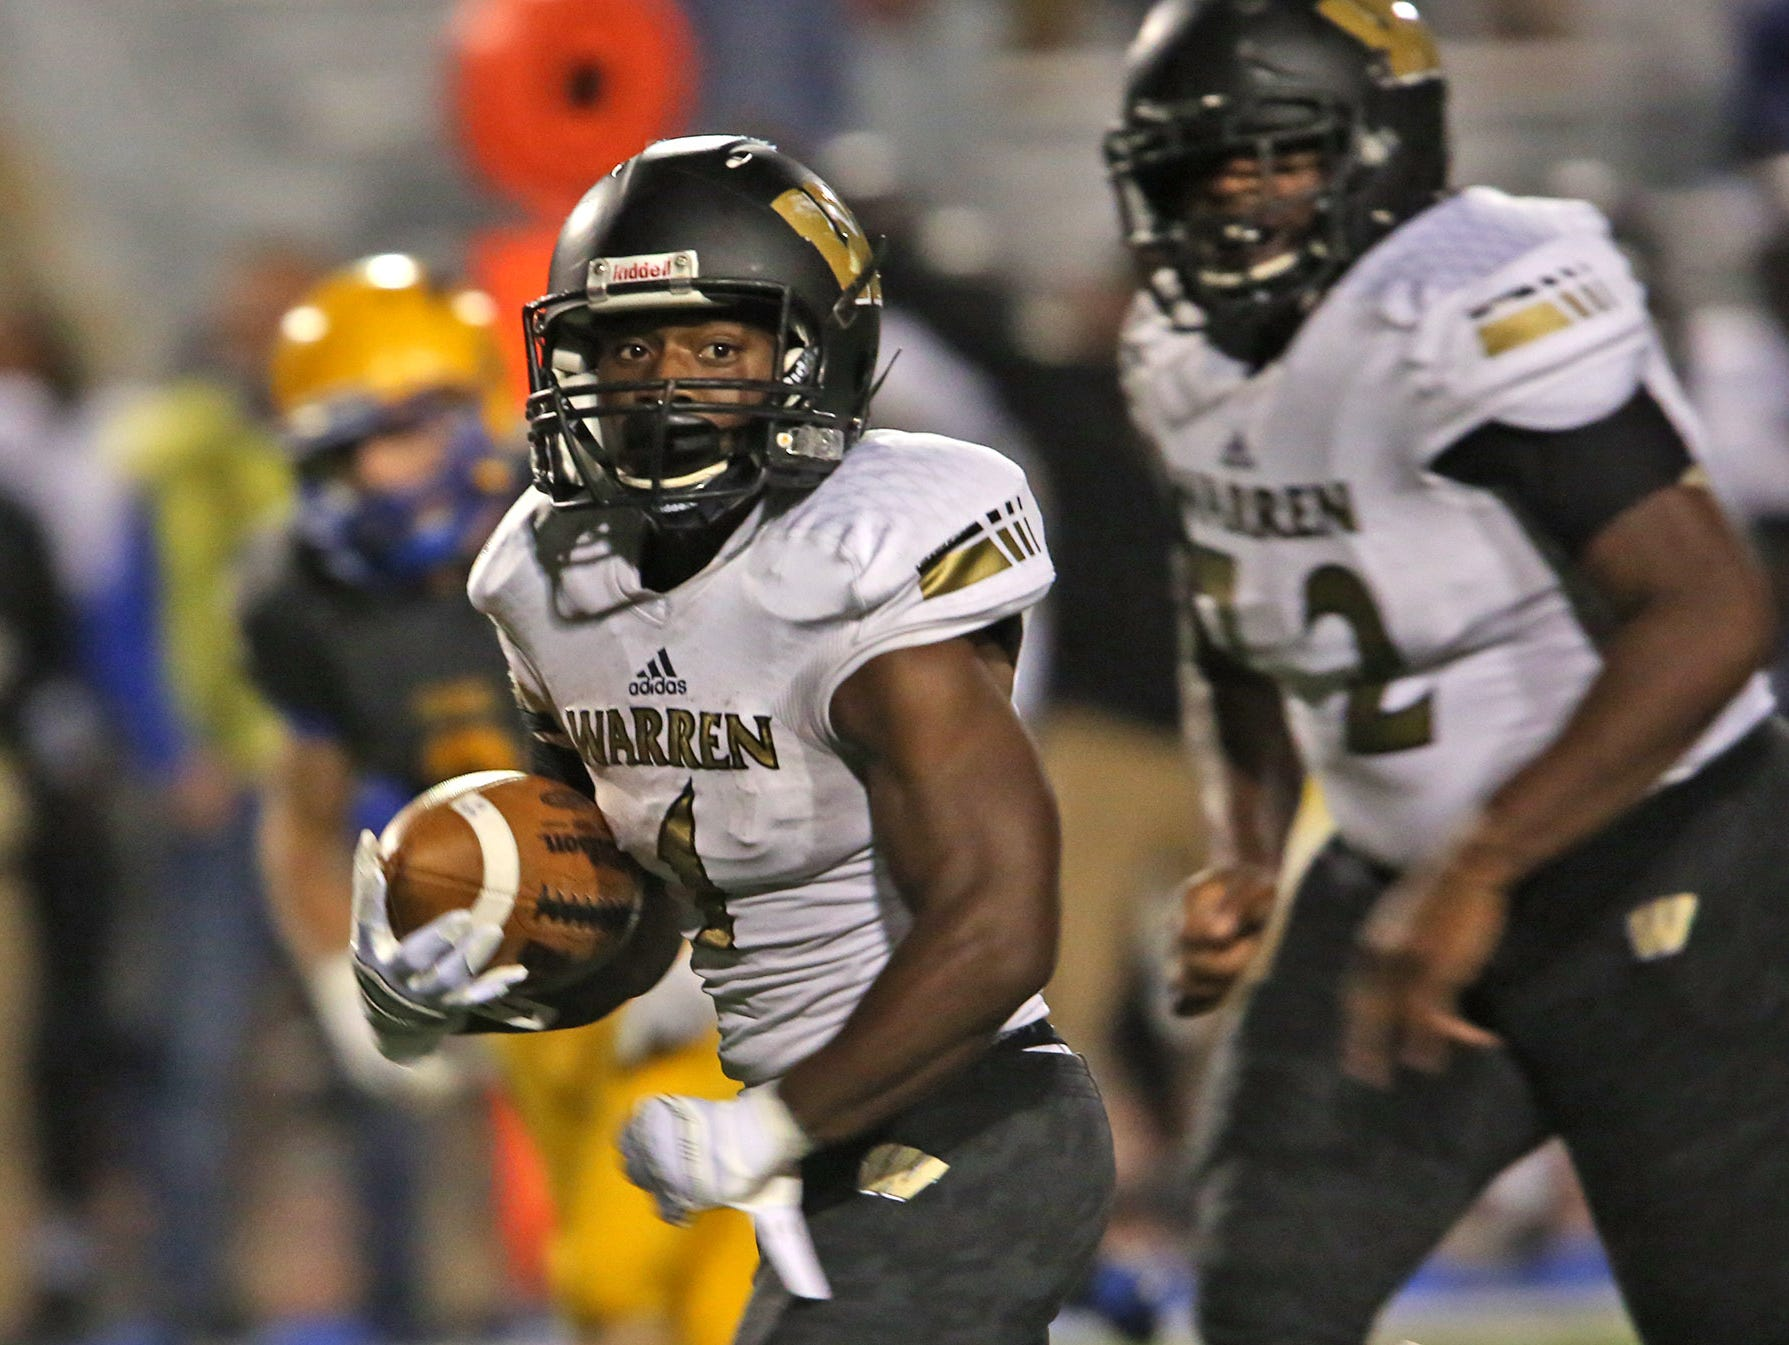 Warren Central's #1 Jay Coe breaks out for a 42-yard touchdown run in first half during the Warren Central at Carmel High School football game, Friday, October 9, 2015.